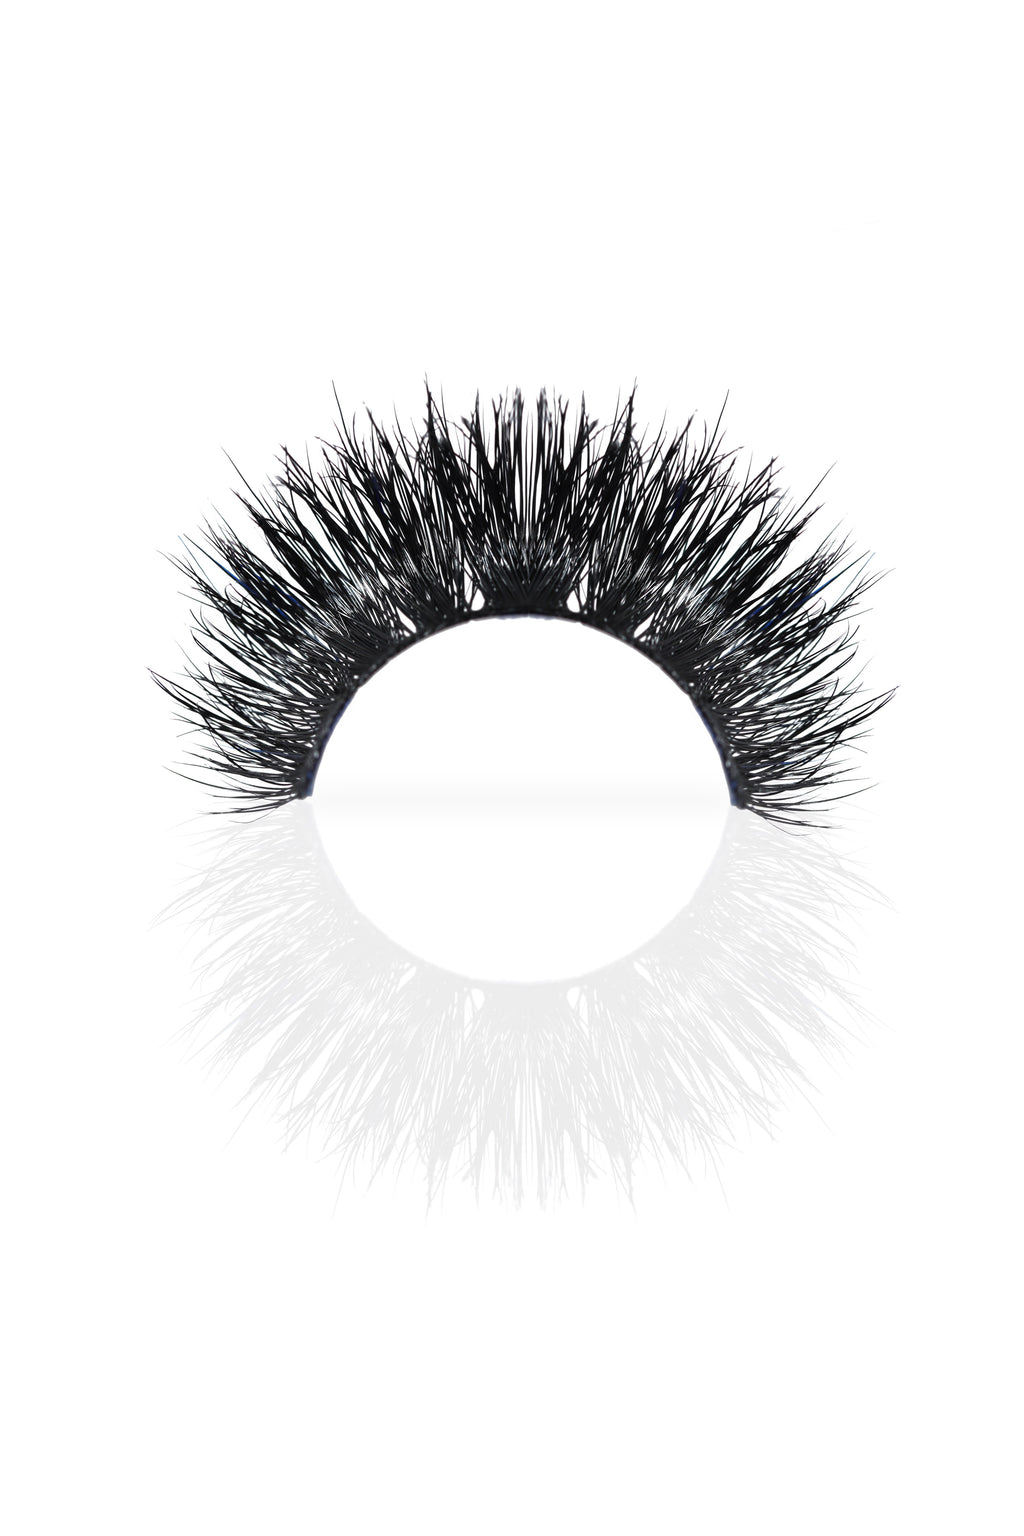 9b91b4b9915 GB11 Luxury Mink Eyelashes – Glamify Beauty